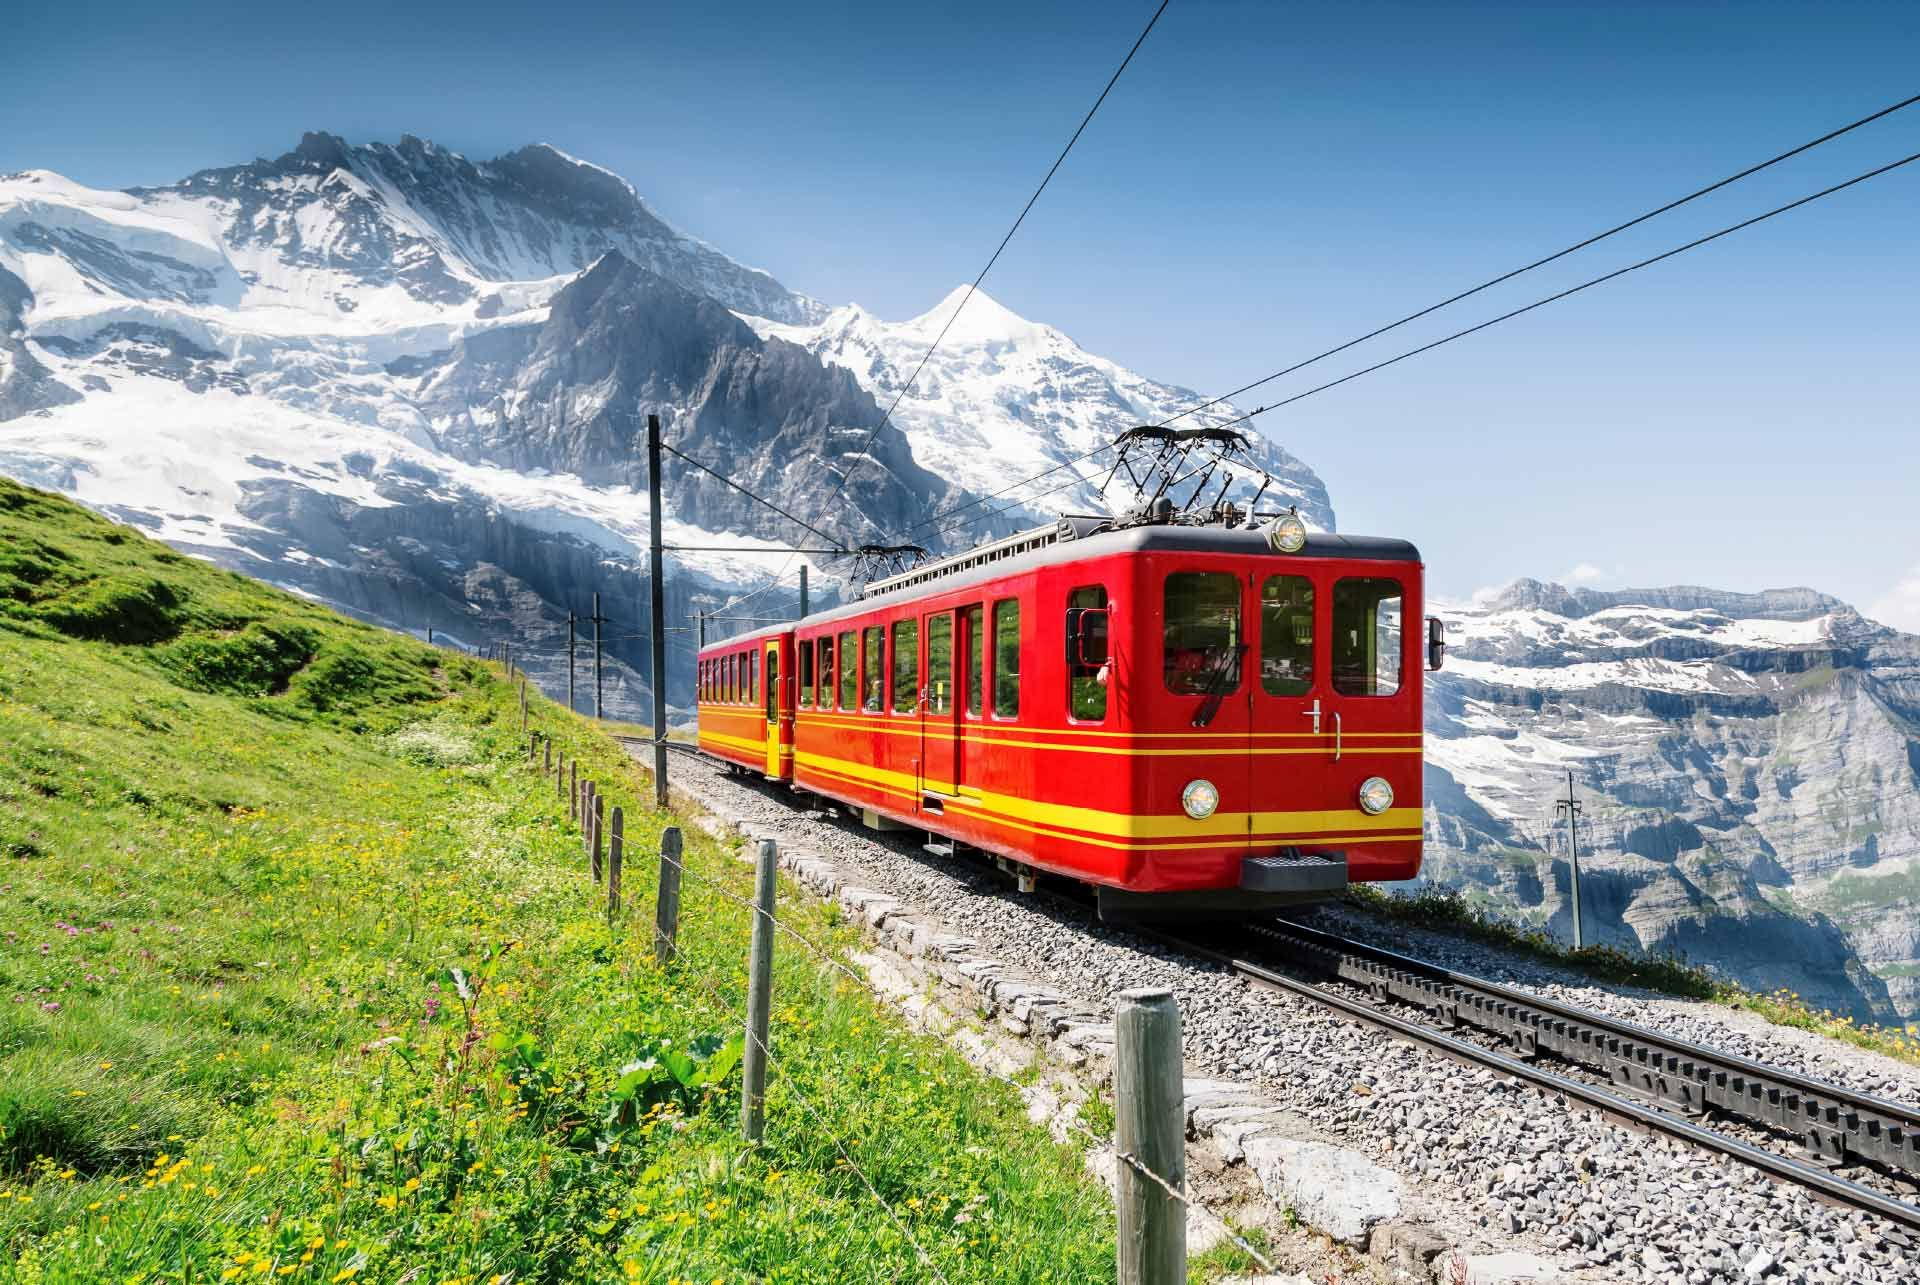 Excursion to Jungfrau